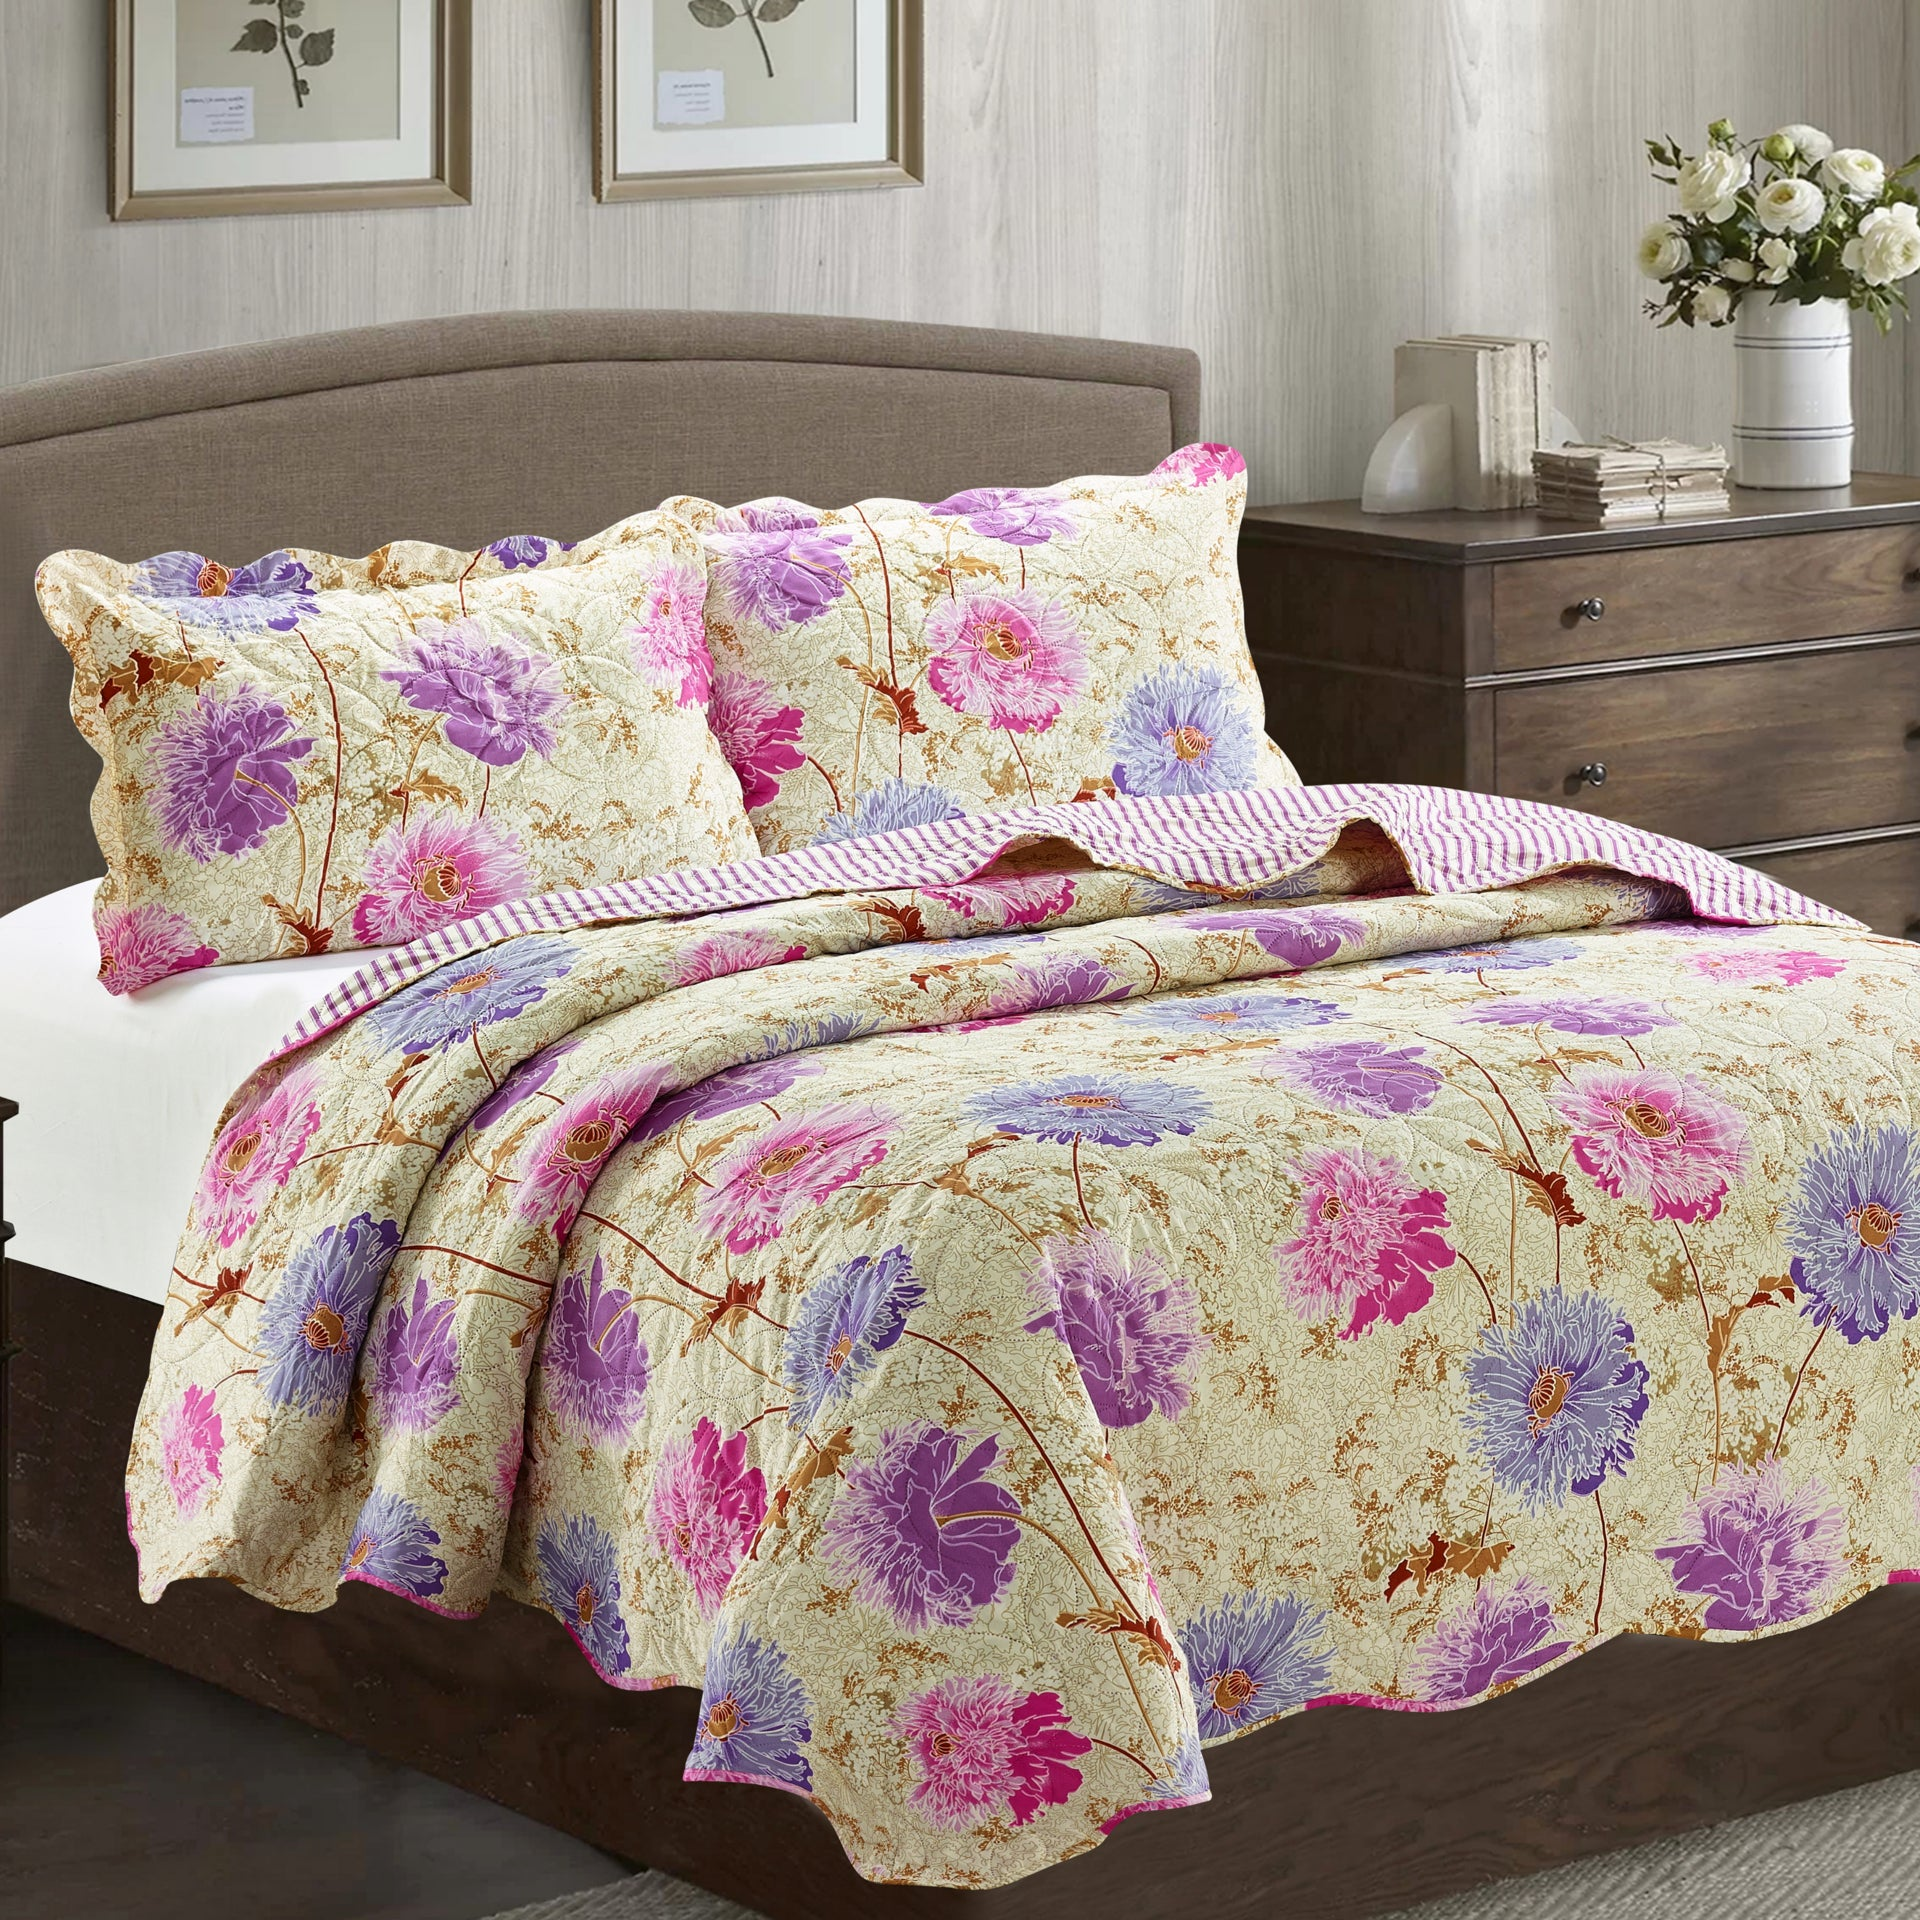 Suzy 3 Piece Quilt Set - Purple - Glory Home Design